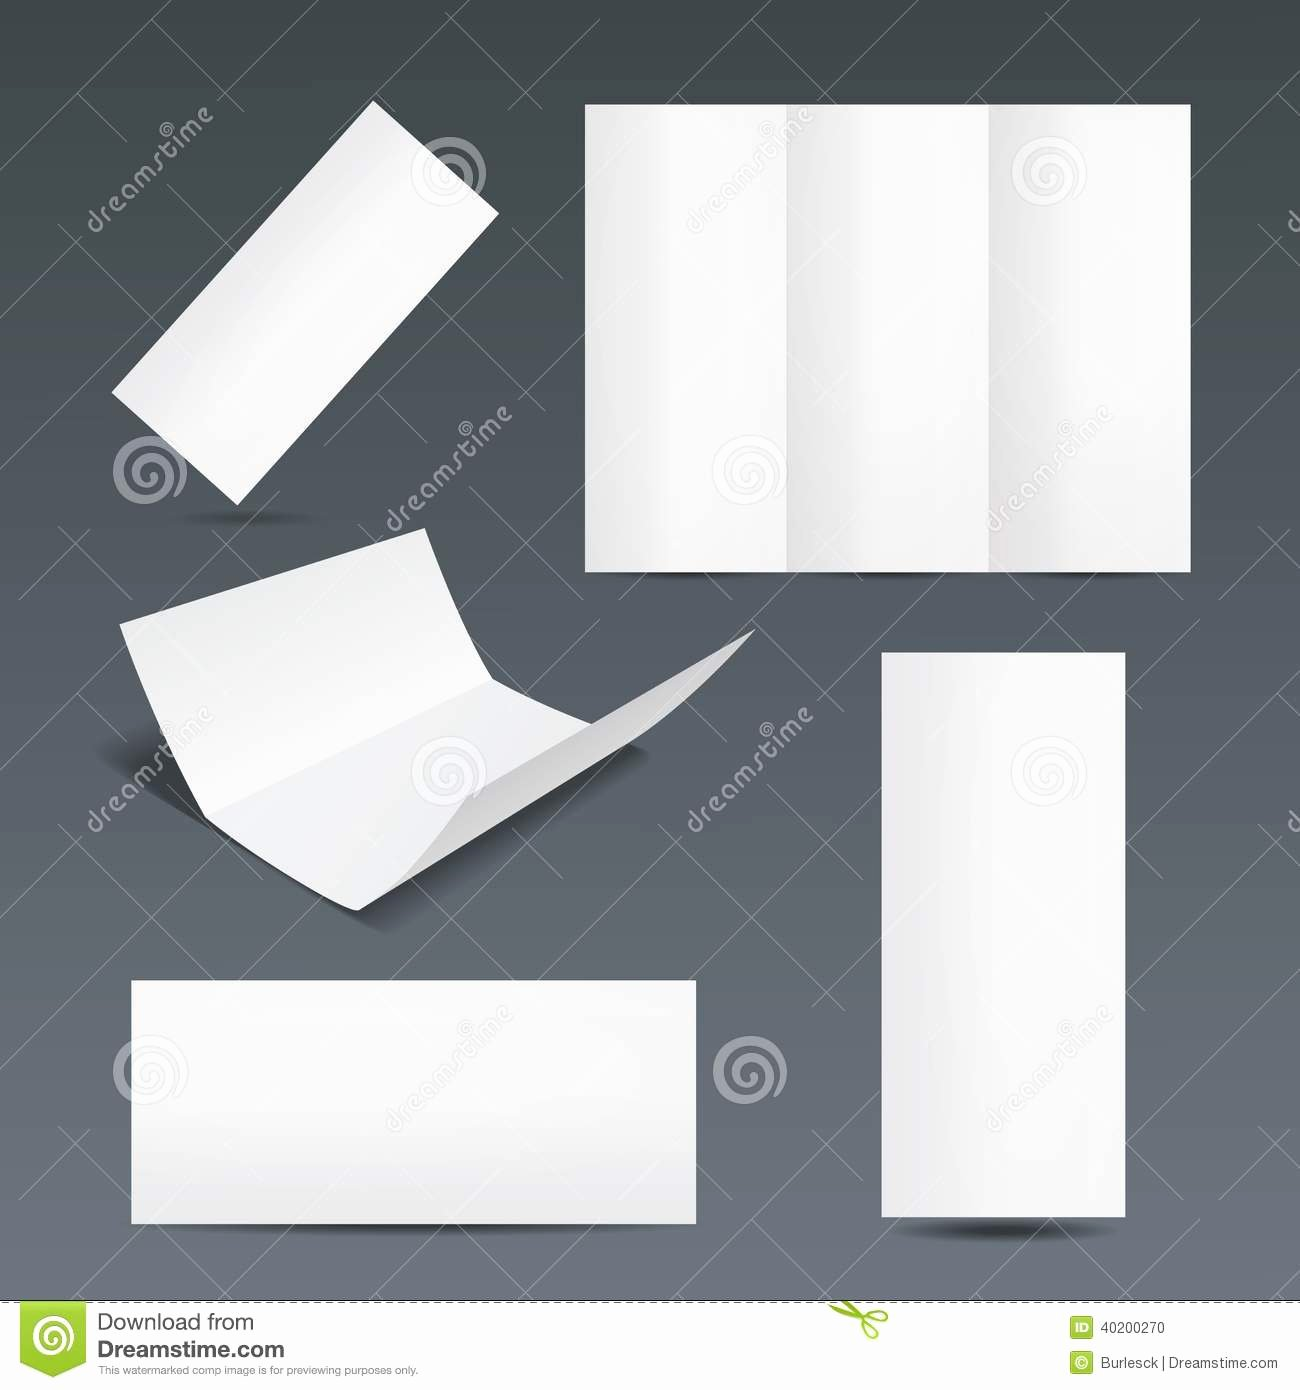 Folded Business Cards Template